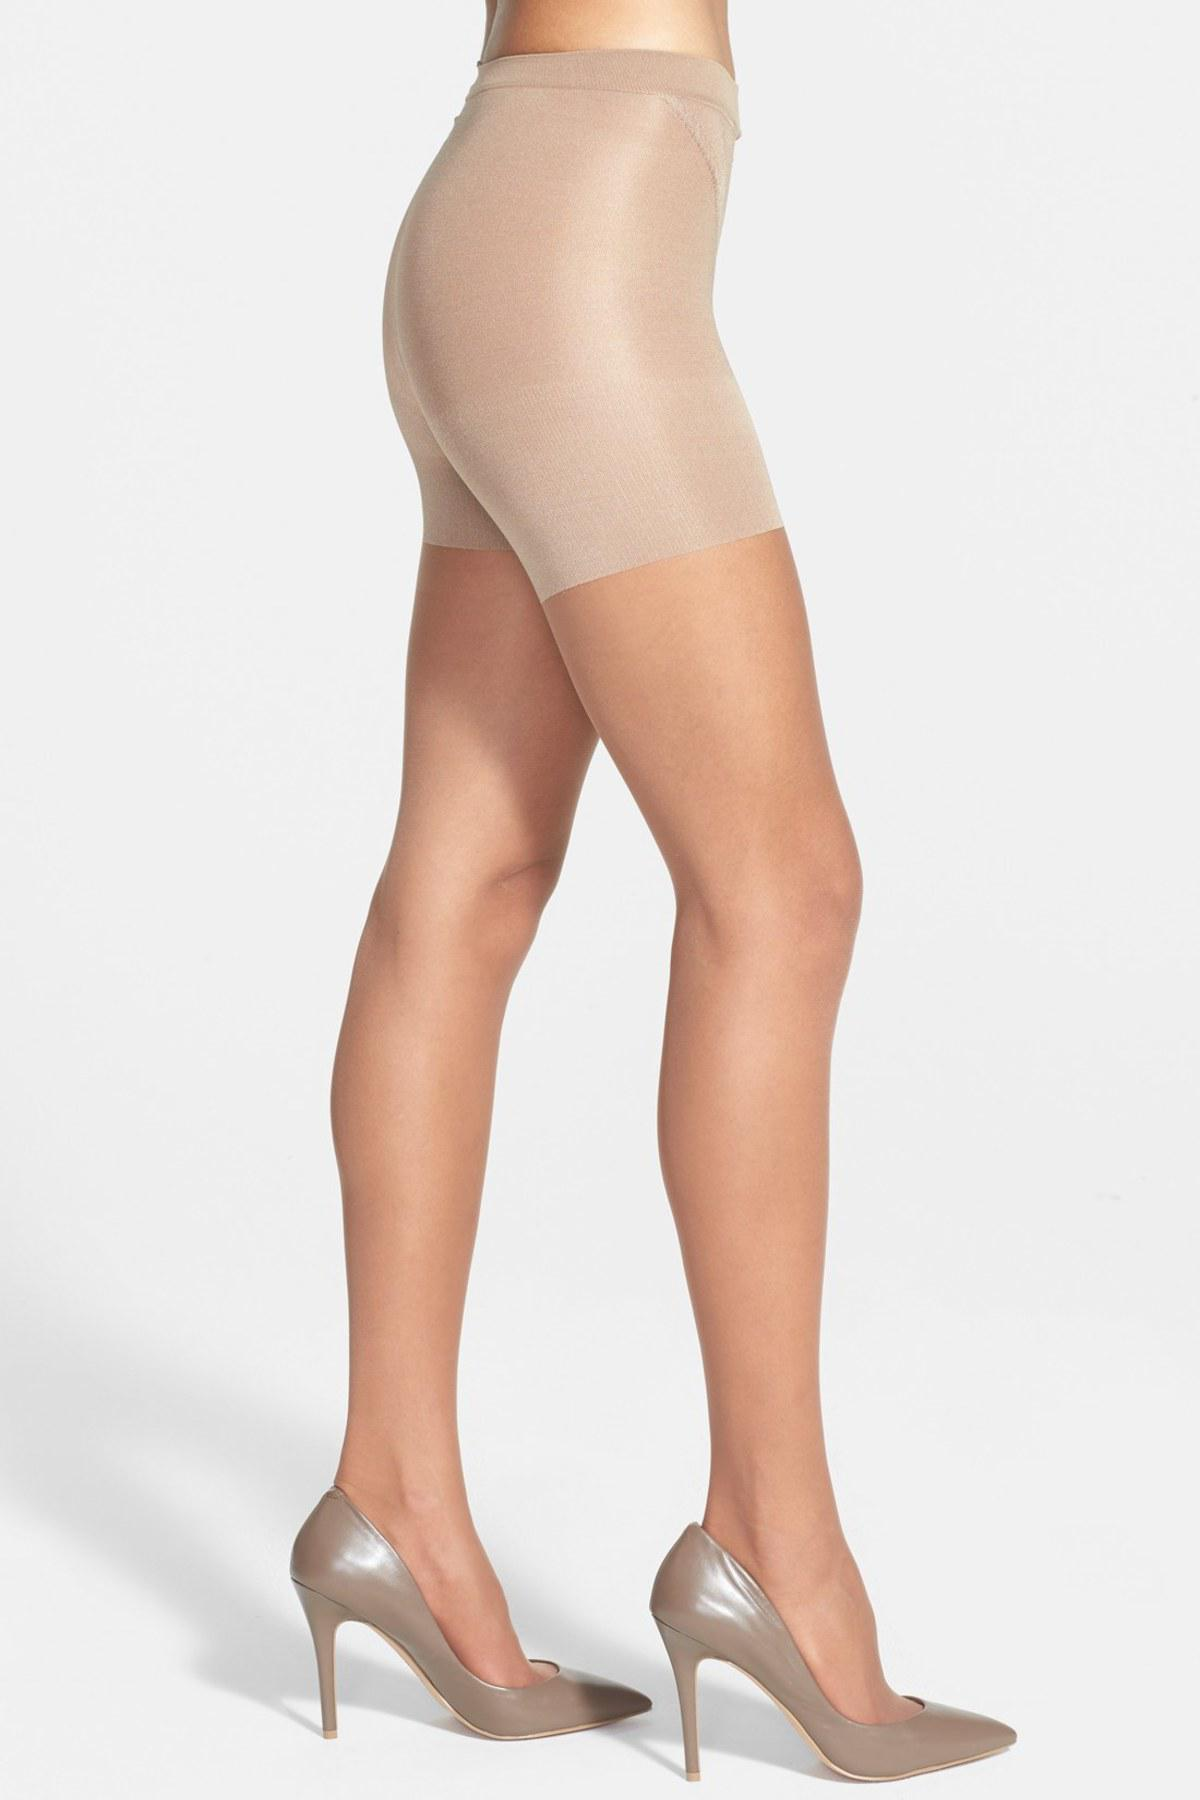 a50e1b80891 Lyst - Spanx Original Sheer Tights in Brown